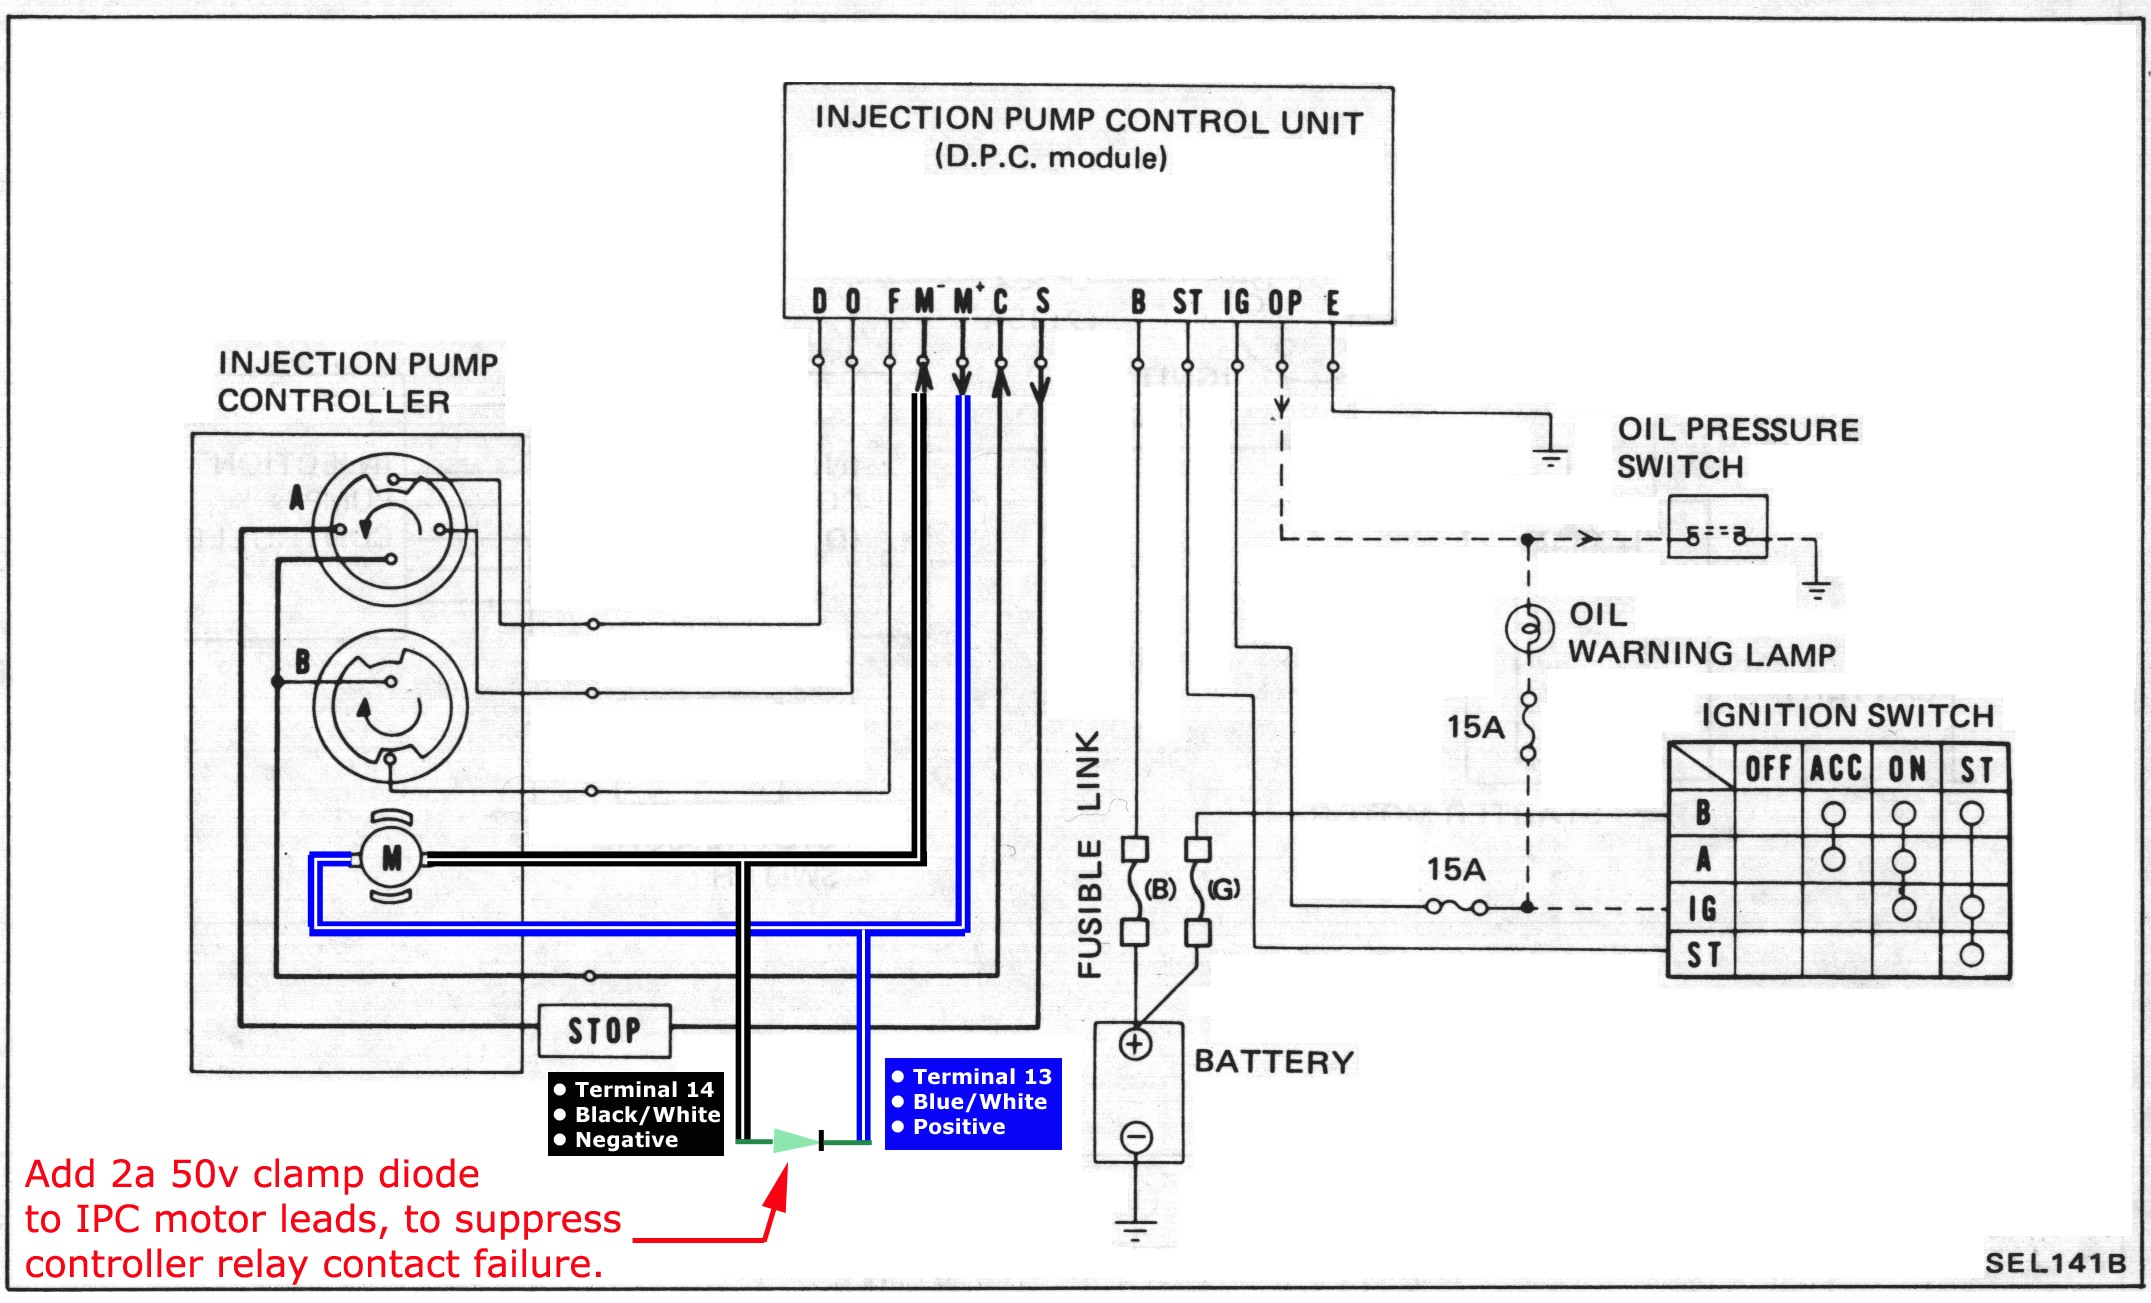 Nissandiesel forums view topic dpc module injection pump image publicscrutiny Choice Image